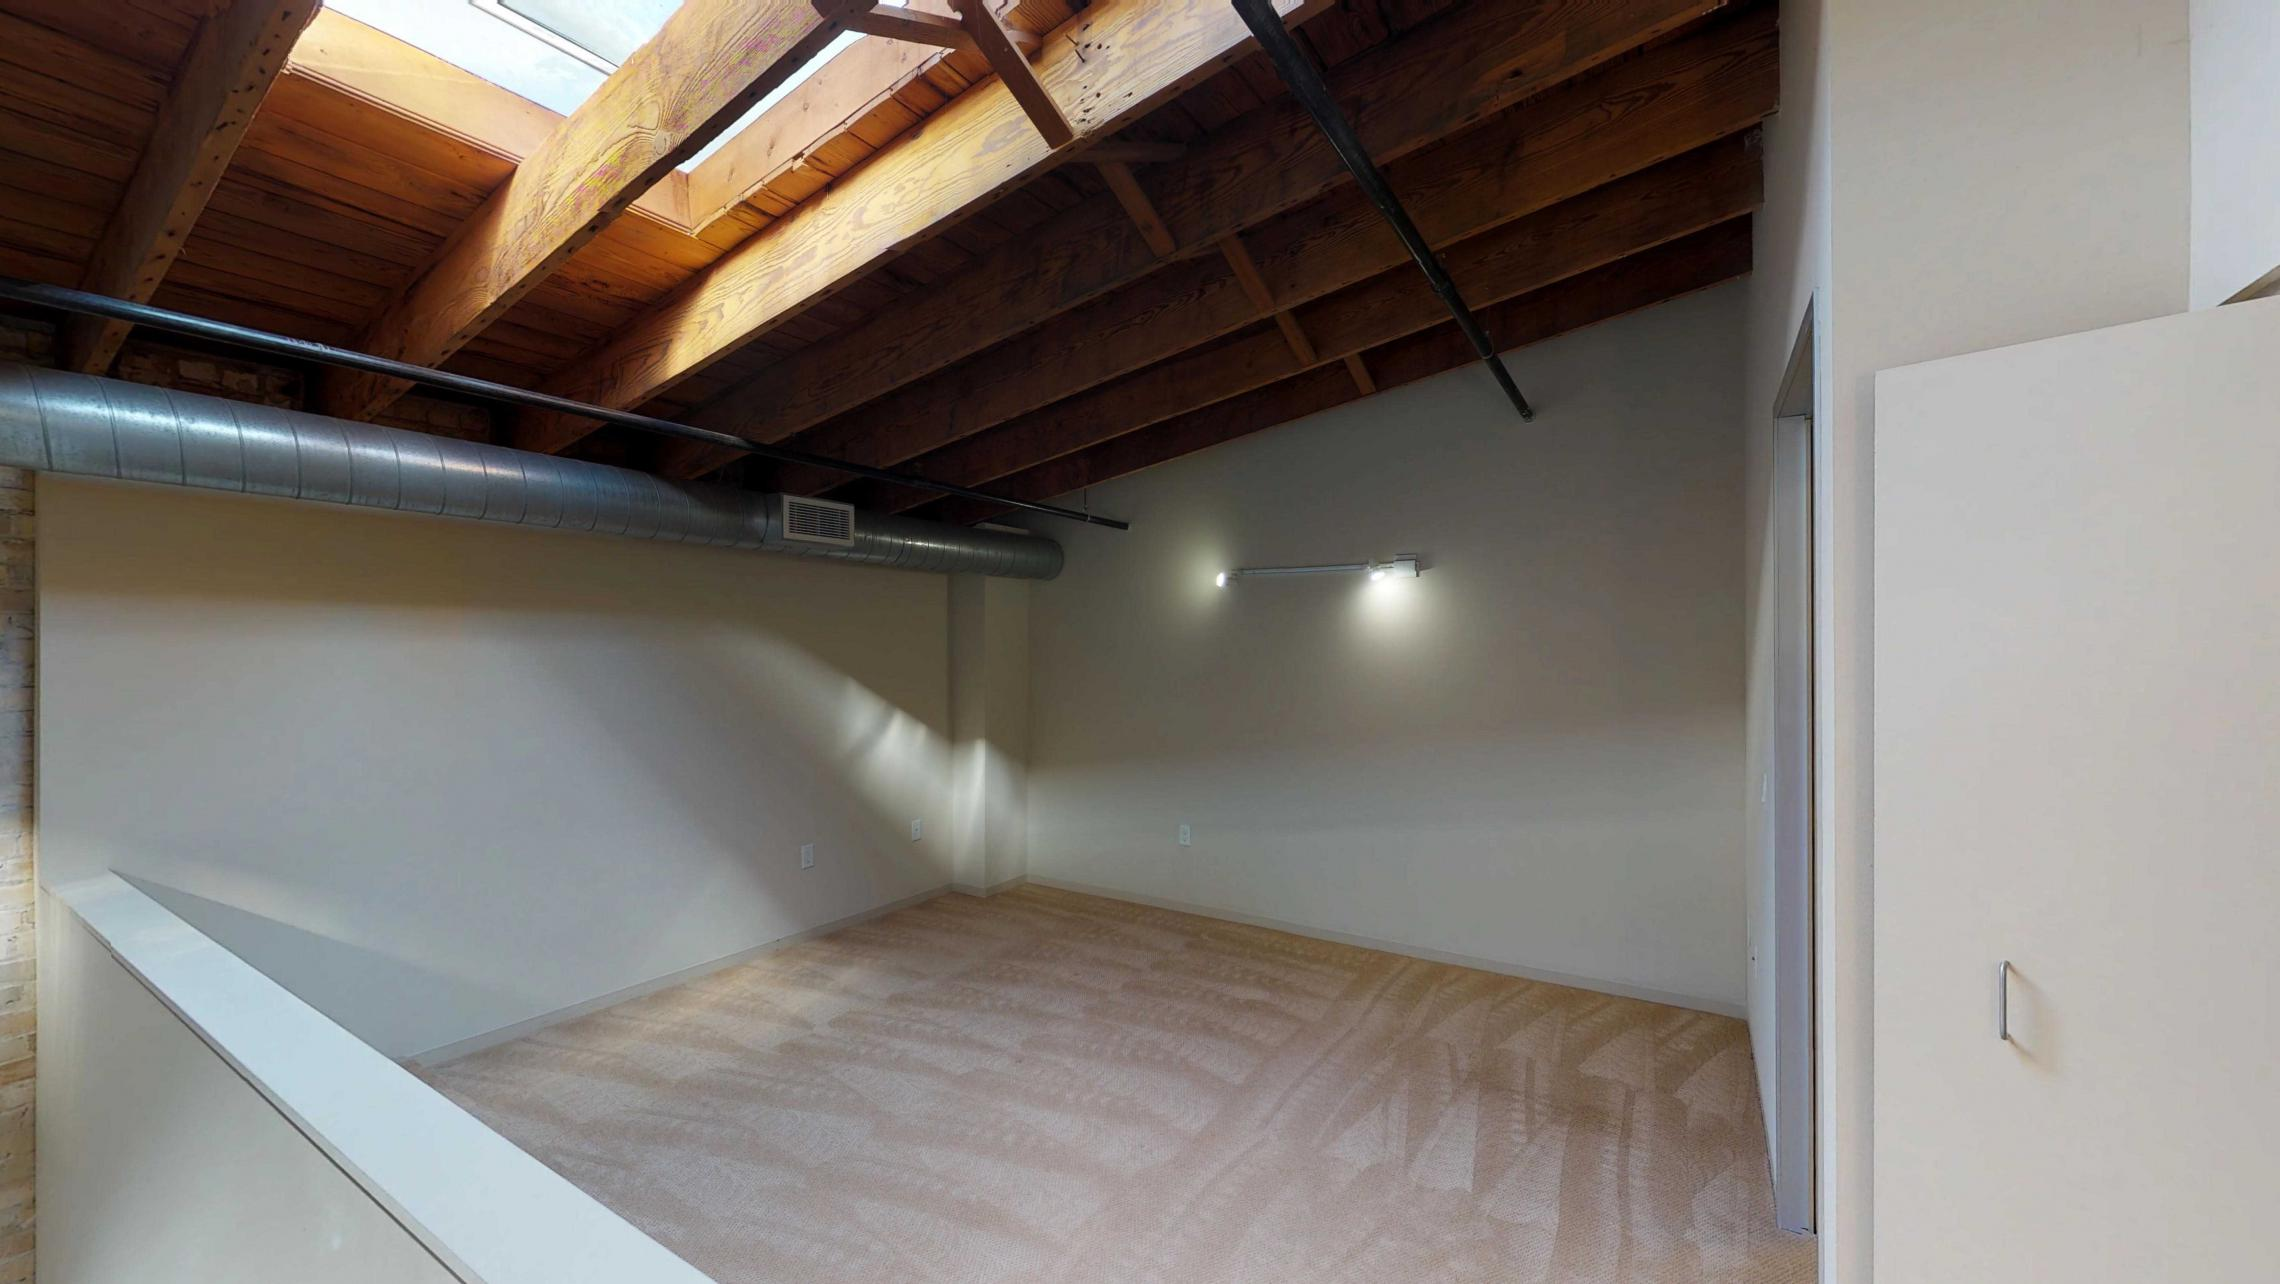 E307-Downtown-Lofted-Historic-Madison-Two-Bedroom-Loft-Skylight-Vaulted-Exposures-Yards-Luxury.jpg